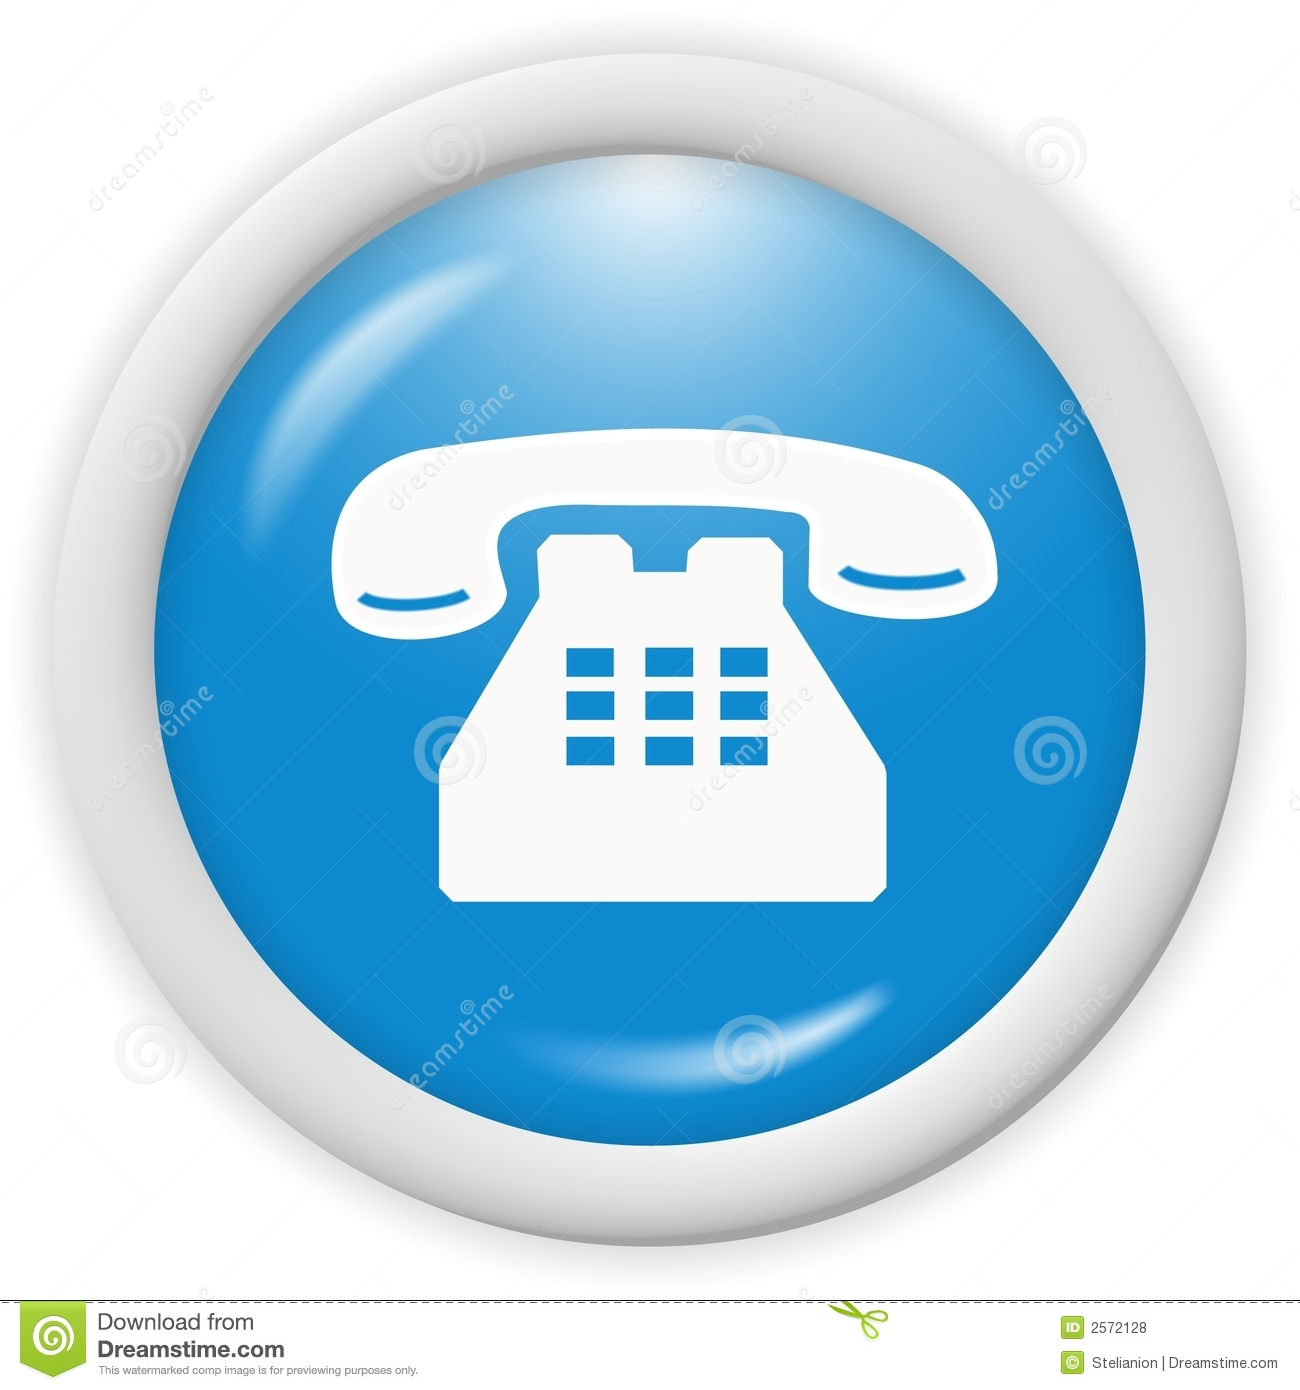 phone icon royalty free stock photos image 2572128 Funny Telephone Clip Art Phone Clip Art